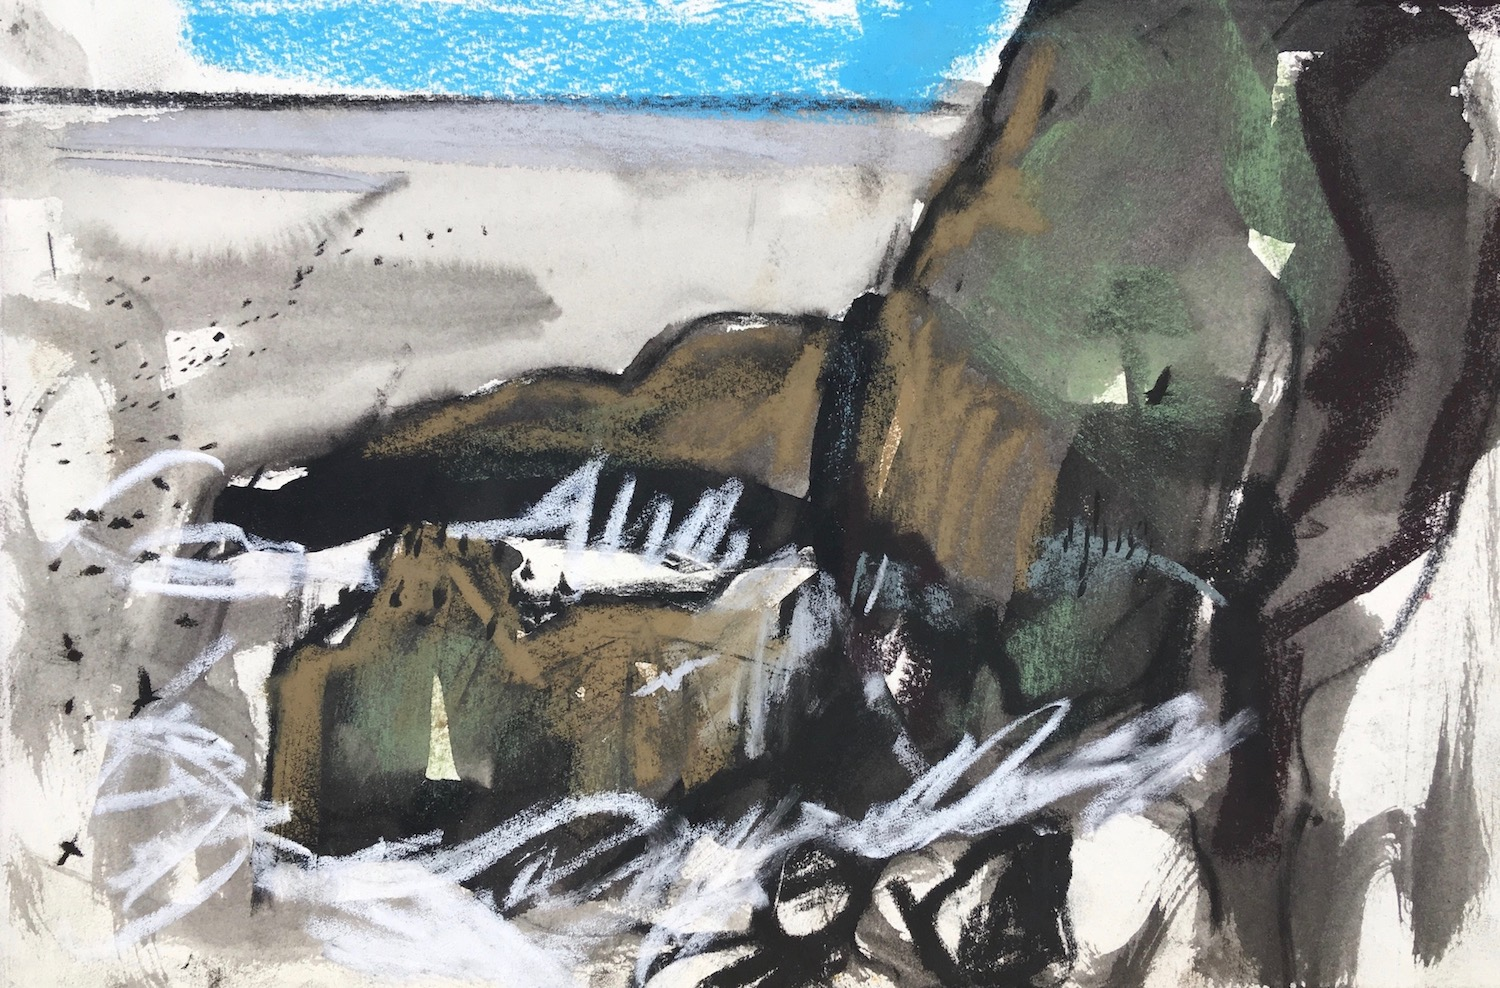 9 St Abbs Head and crashing waves with kittiwake and guillmots, ink wash and soft pastel, June 201828.5 x 18.5cm .jpg